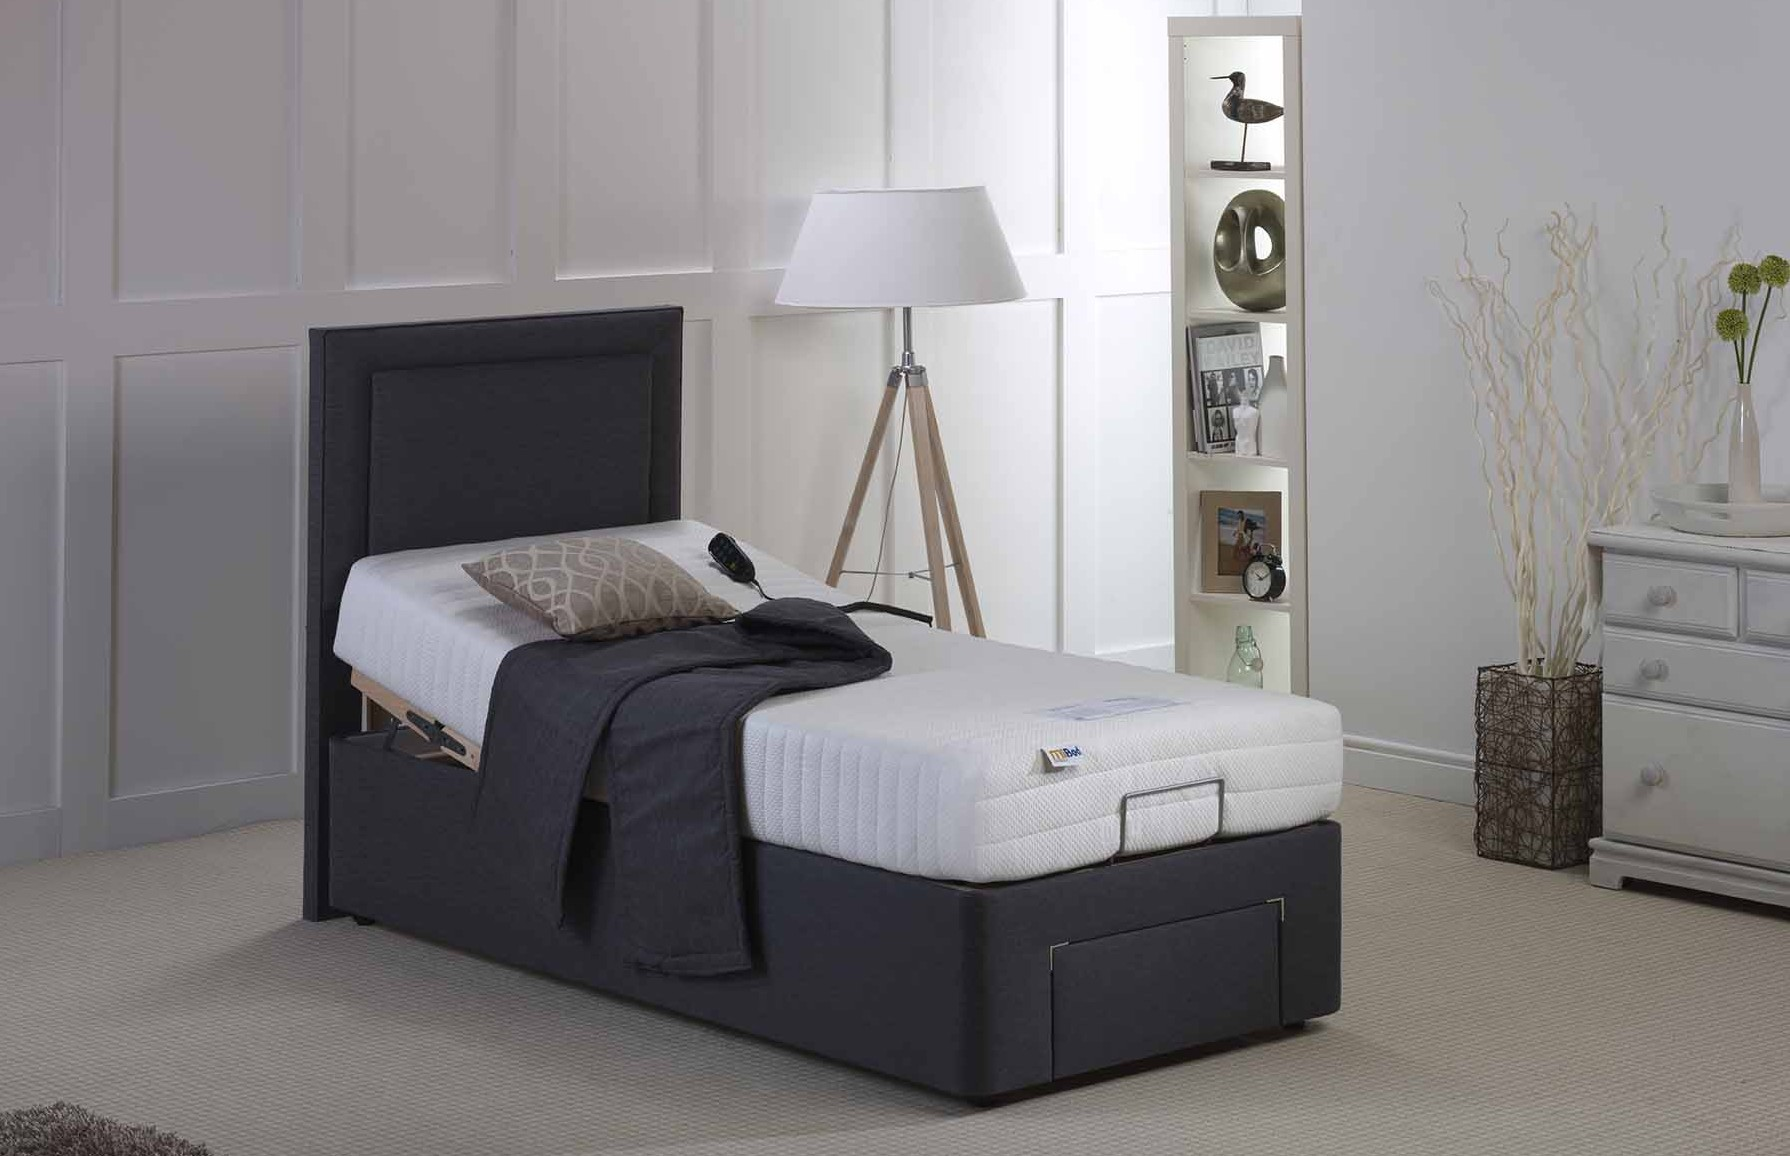 Electric Beds Ni : Mibed verity electric adjustable bed